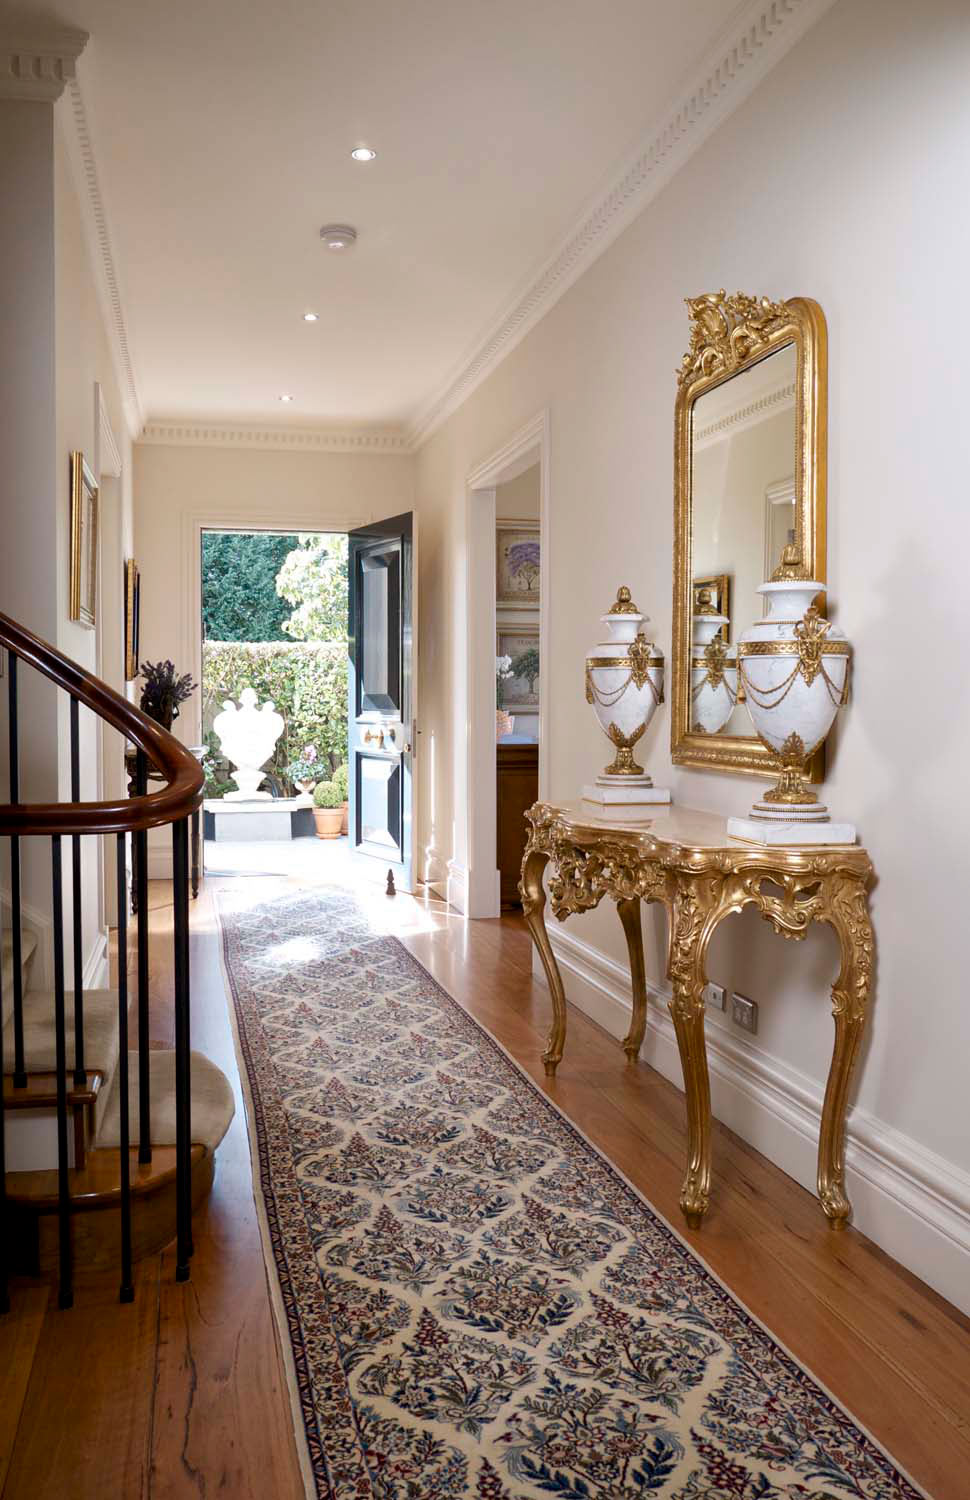 7 Classic french hall way entrance with hall table, rug and mirror with gilding